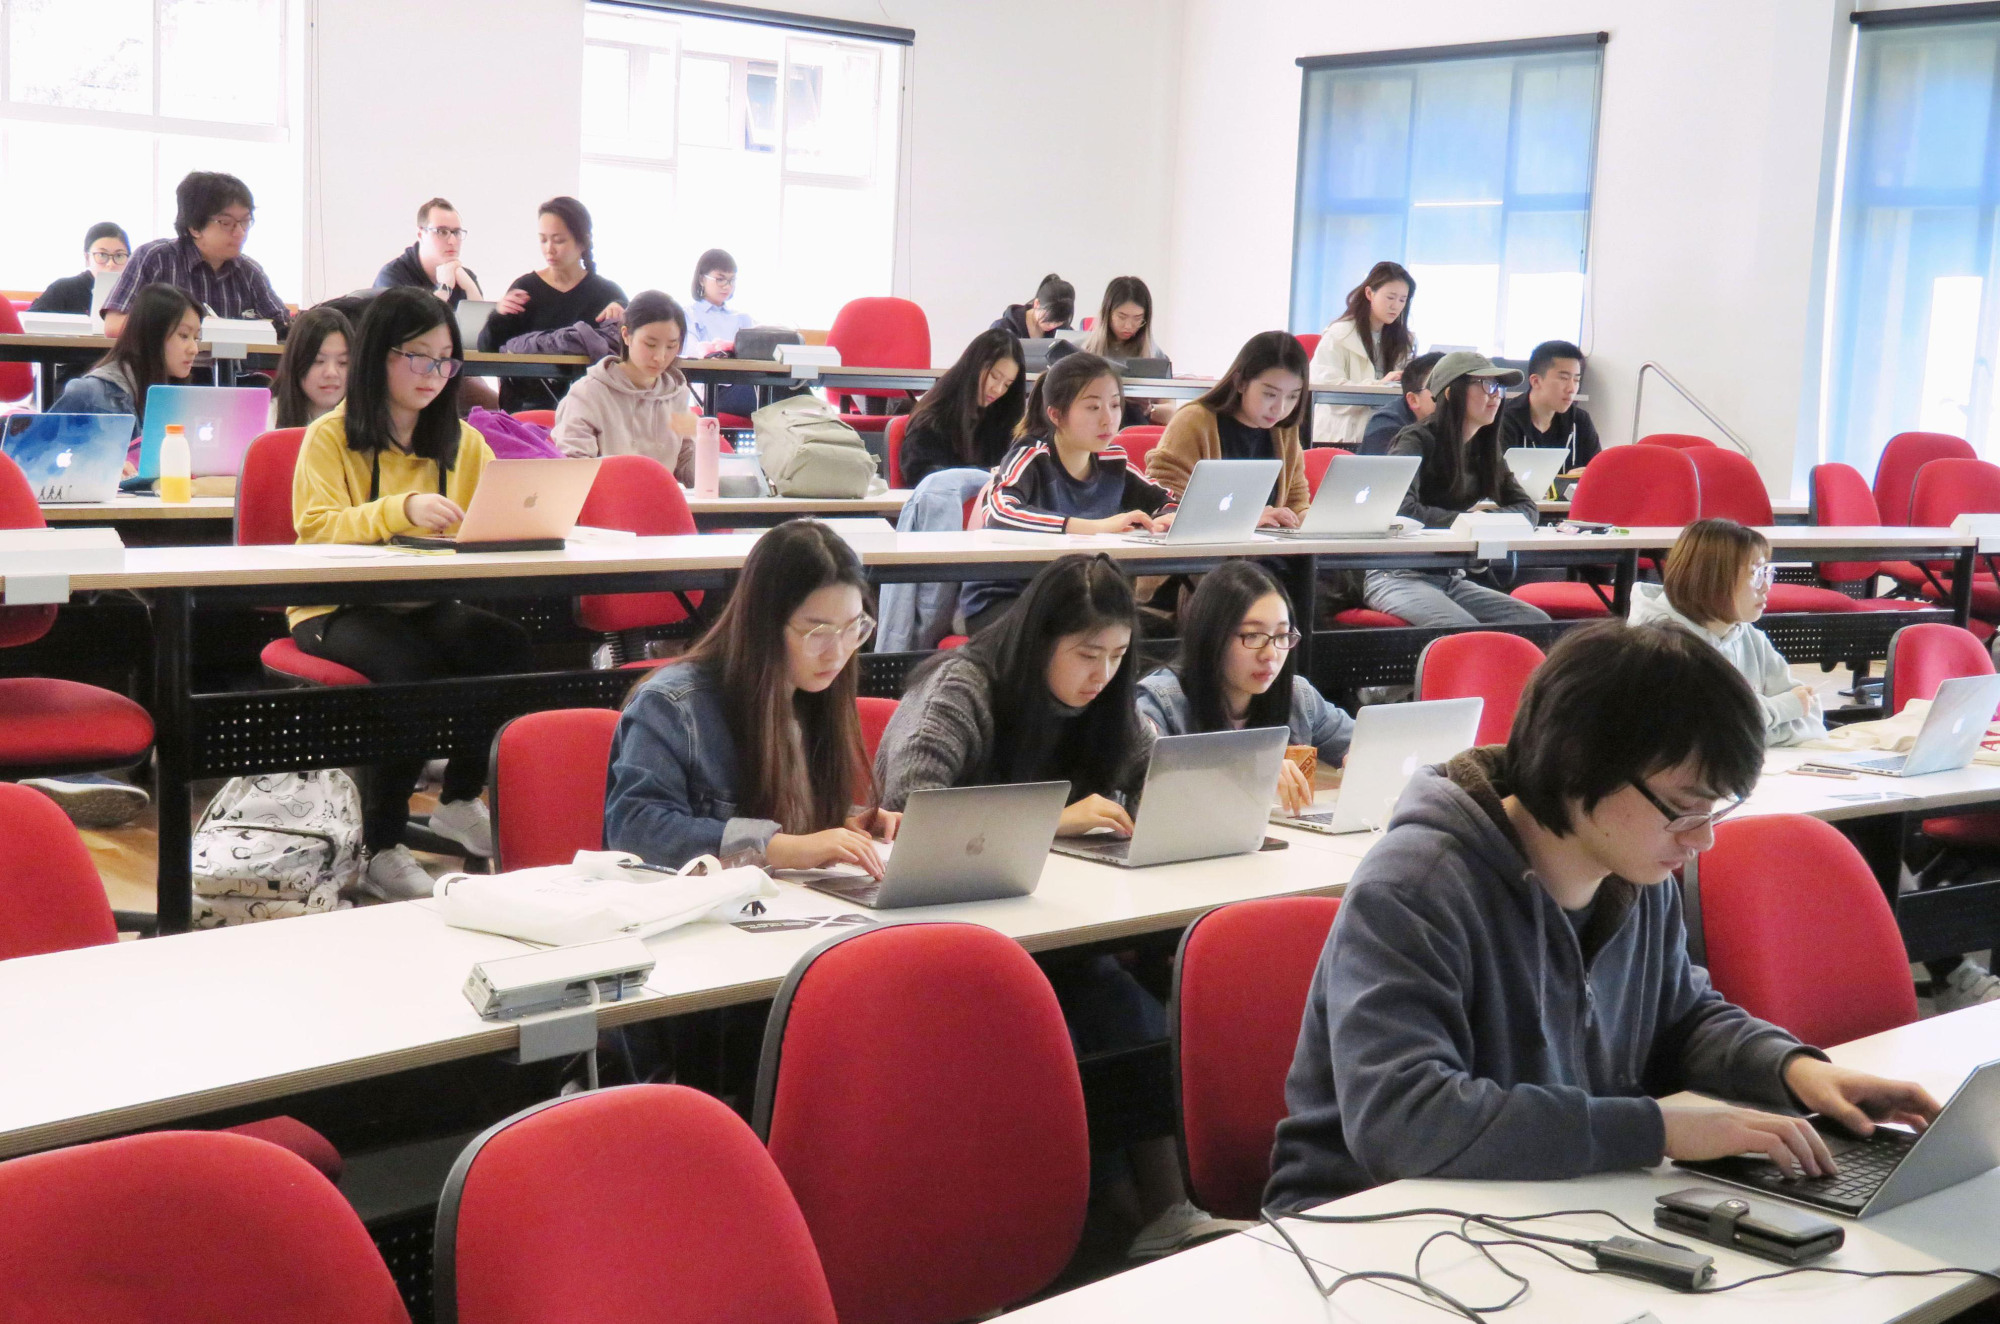 Students attend a Japanese language class at the University of Melbourne on Oct. 3. Since it was first offered, Japanese has been the most popular language taught at the university, with a record 1,634 students currently enrolled. | KYODO